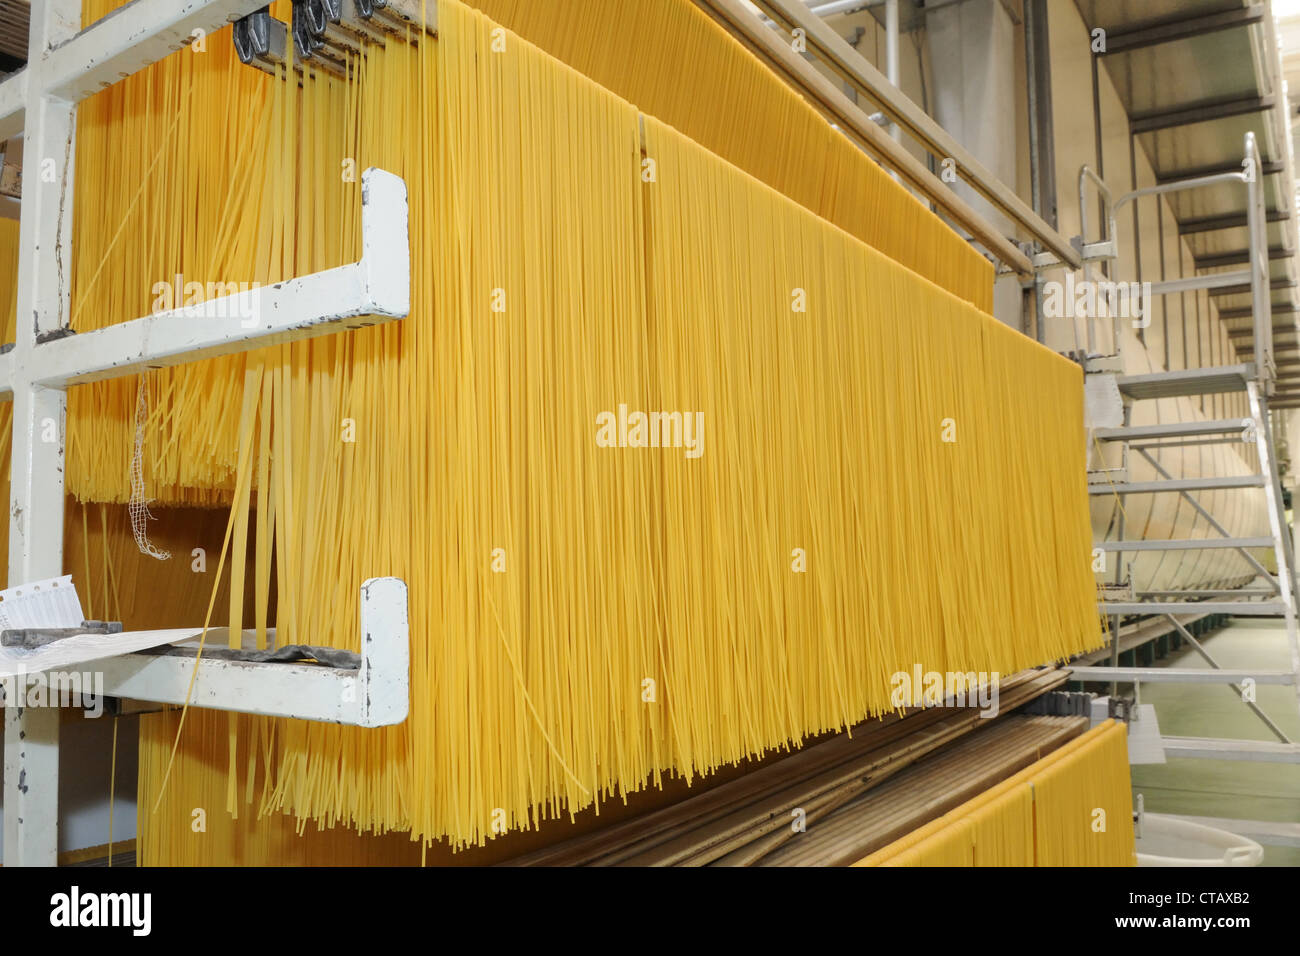 Spaghetti hung out to dry - Stock Image